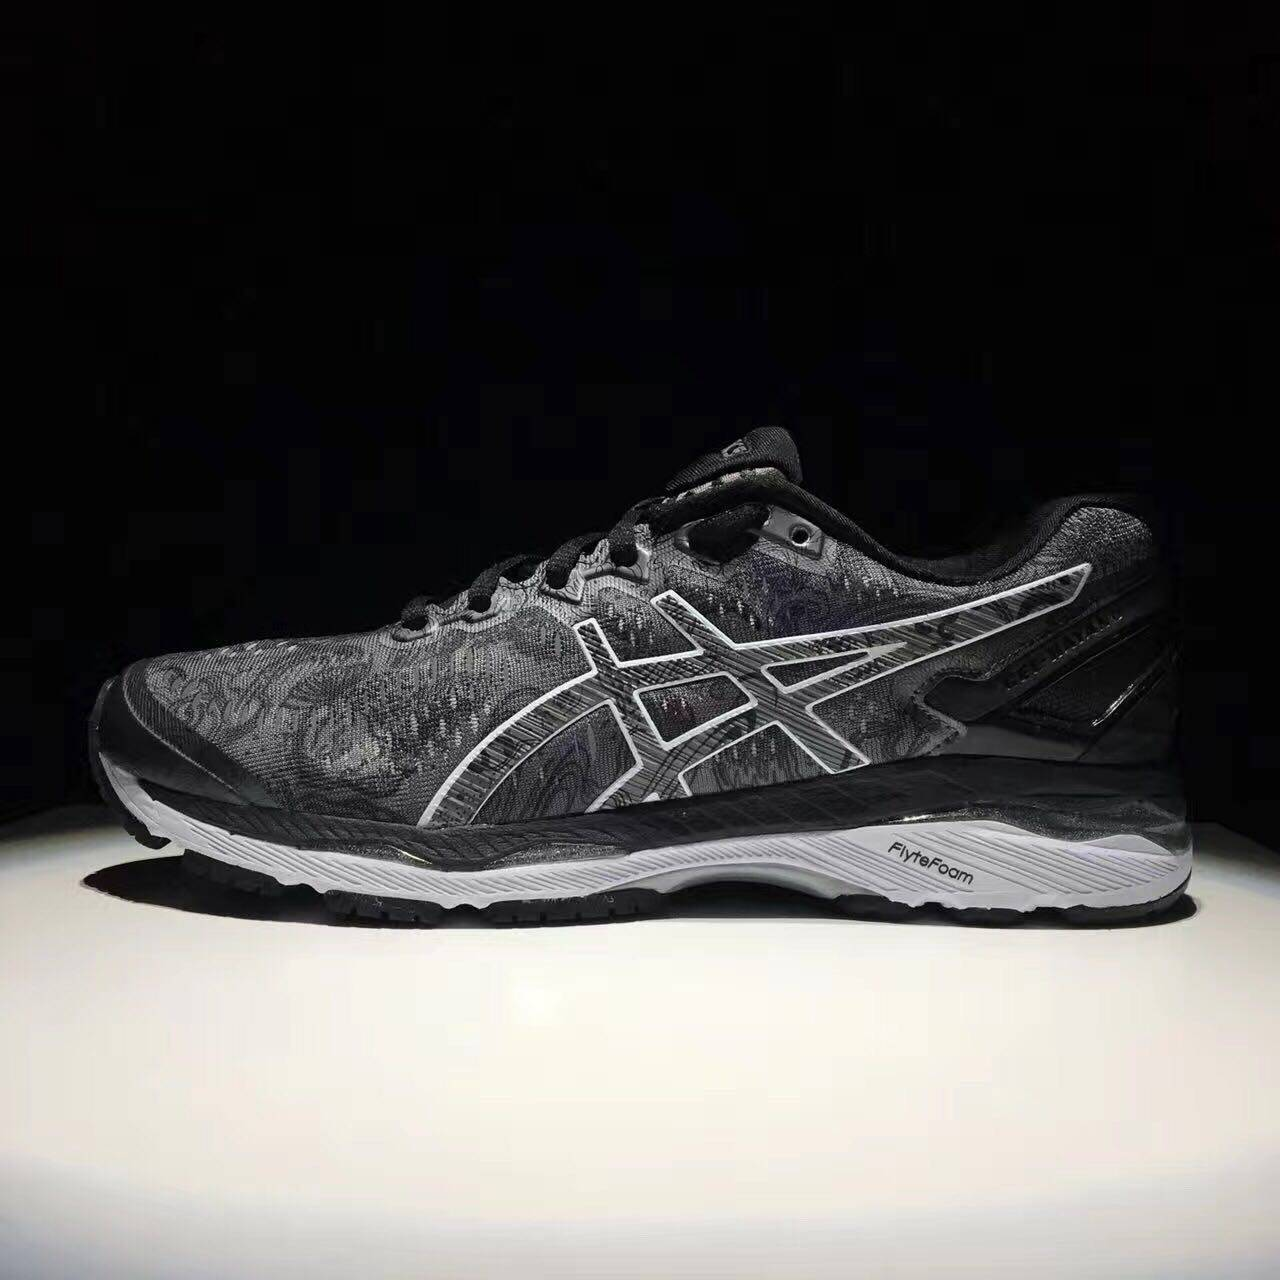 c23ad8c5f39 Tiger AS Running Shoes Mens Arthur Walking Shoes ACS GEL KAYANO 23 Tiger  Teenager Stability and